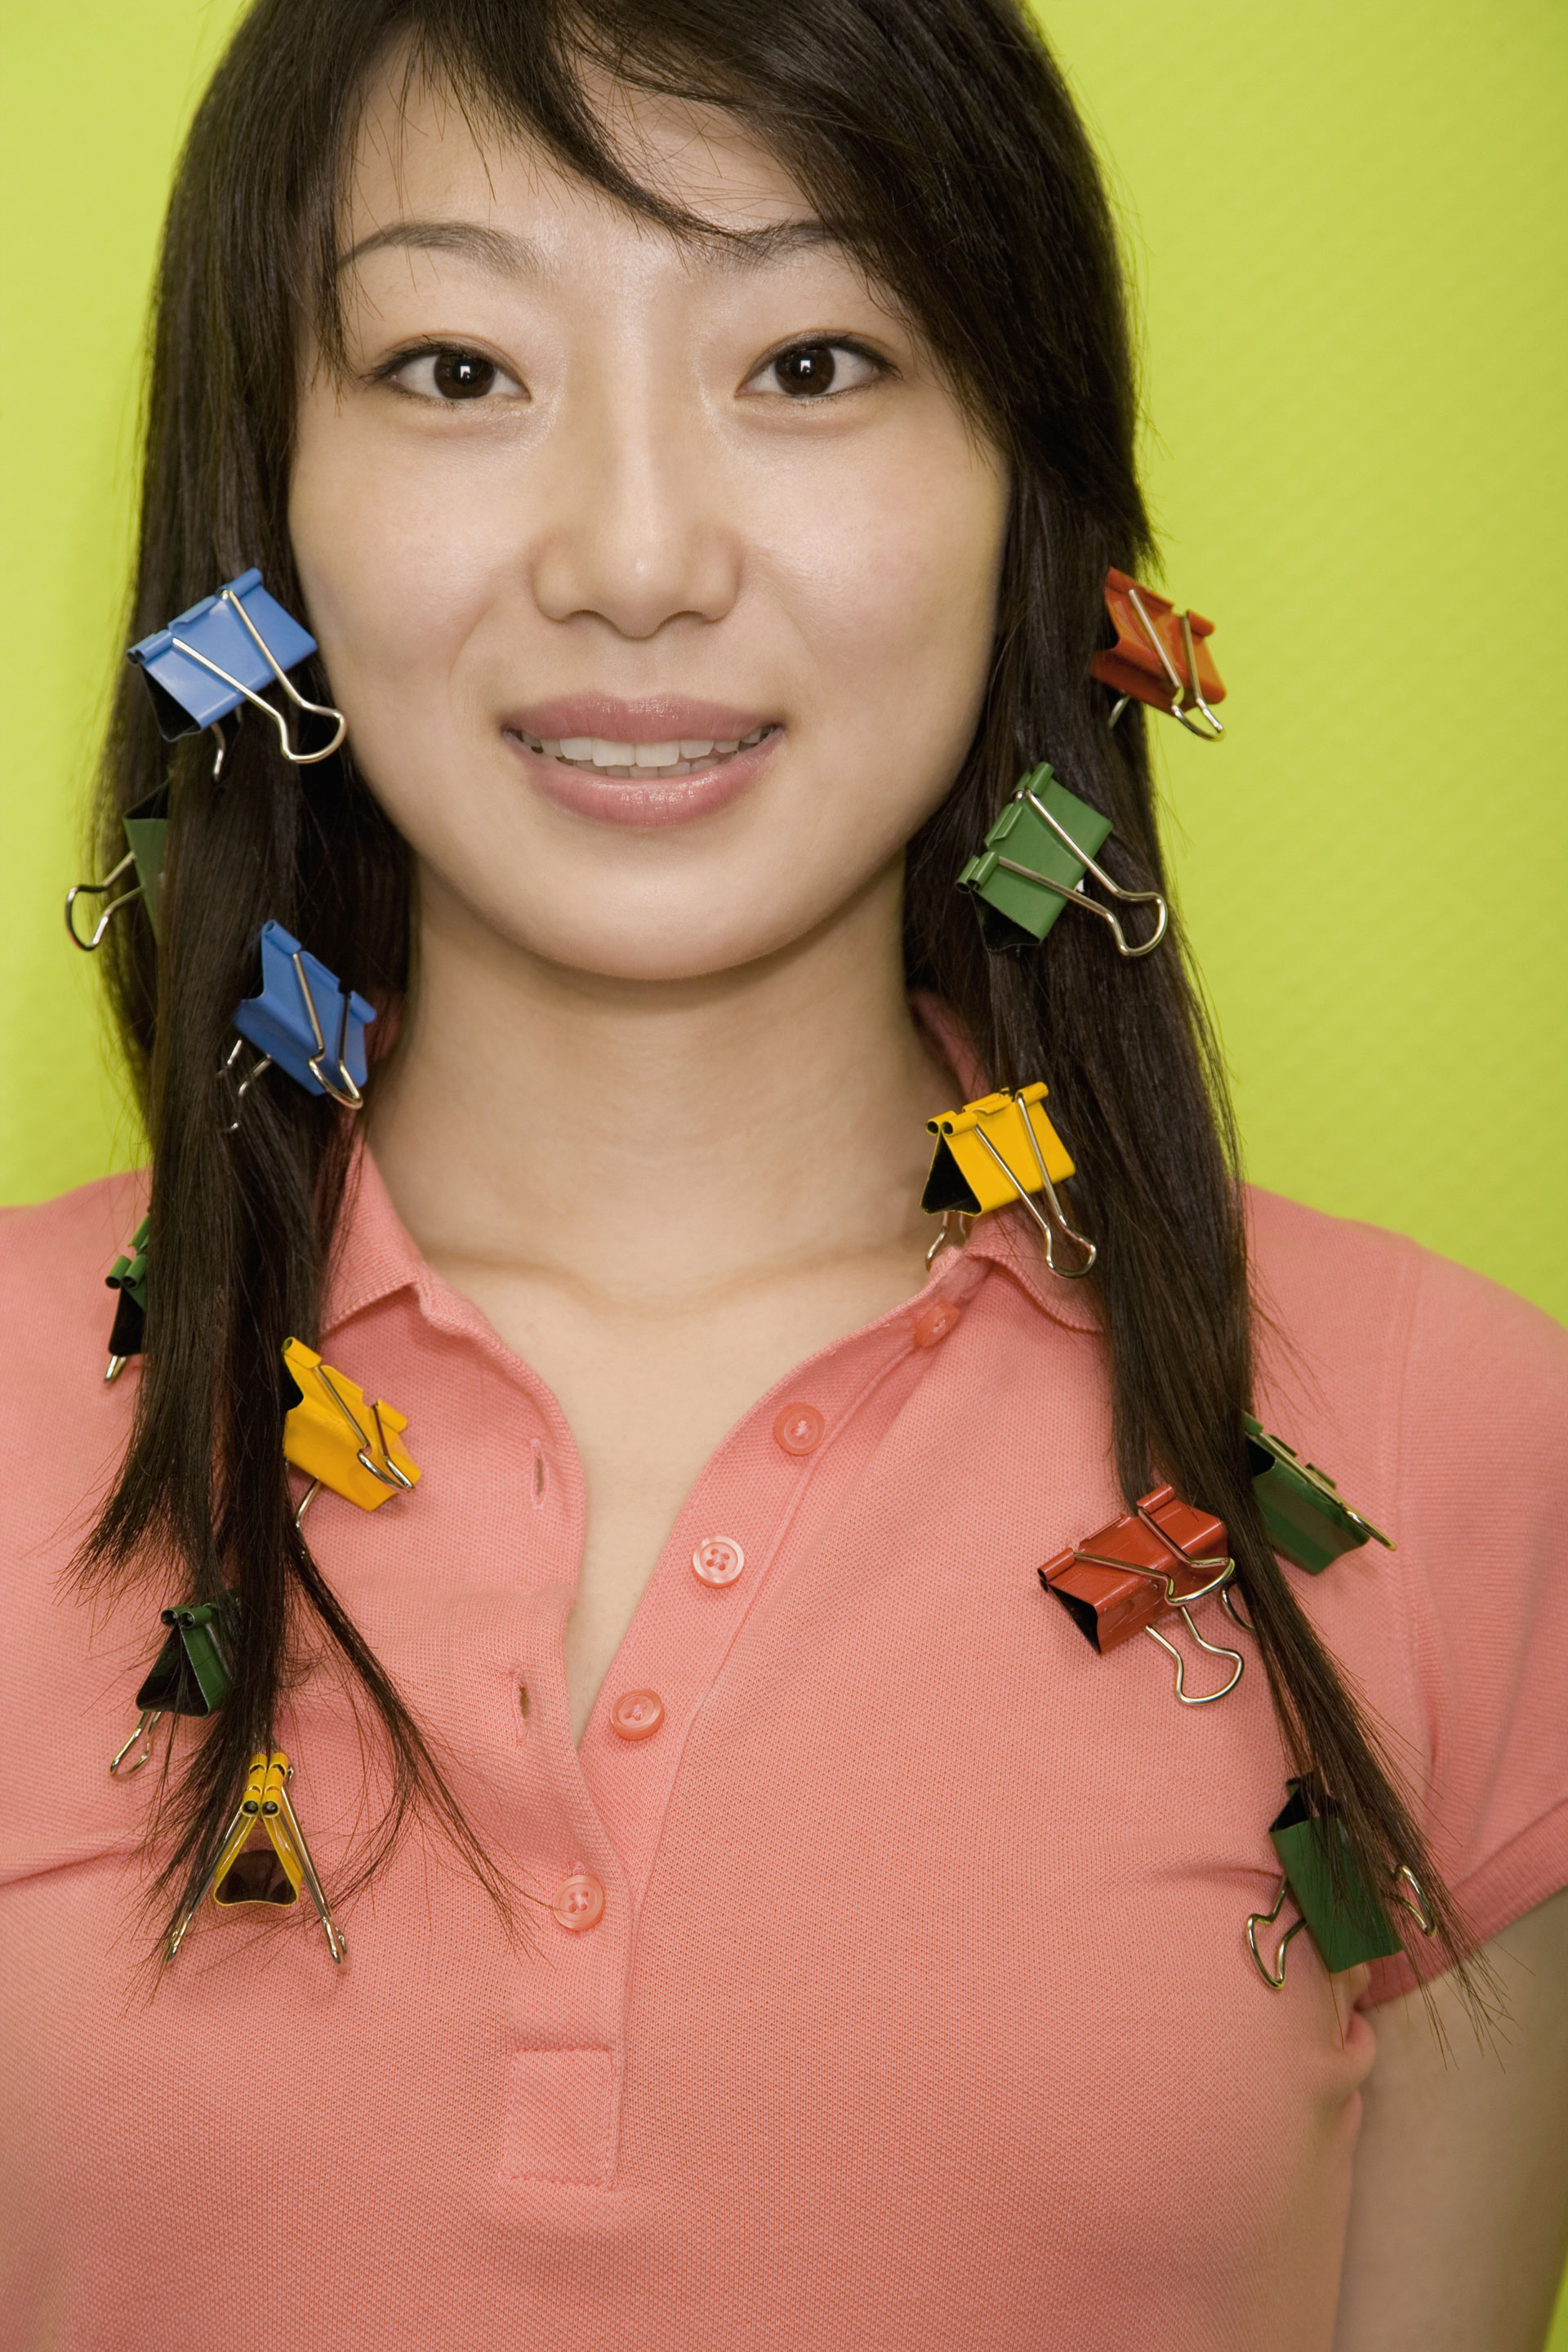 Portrait of young woman with paperclips in her hair